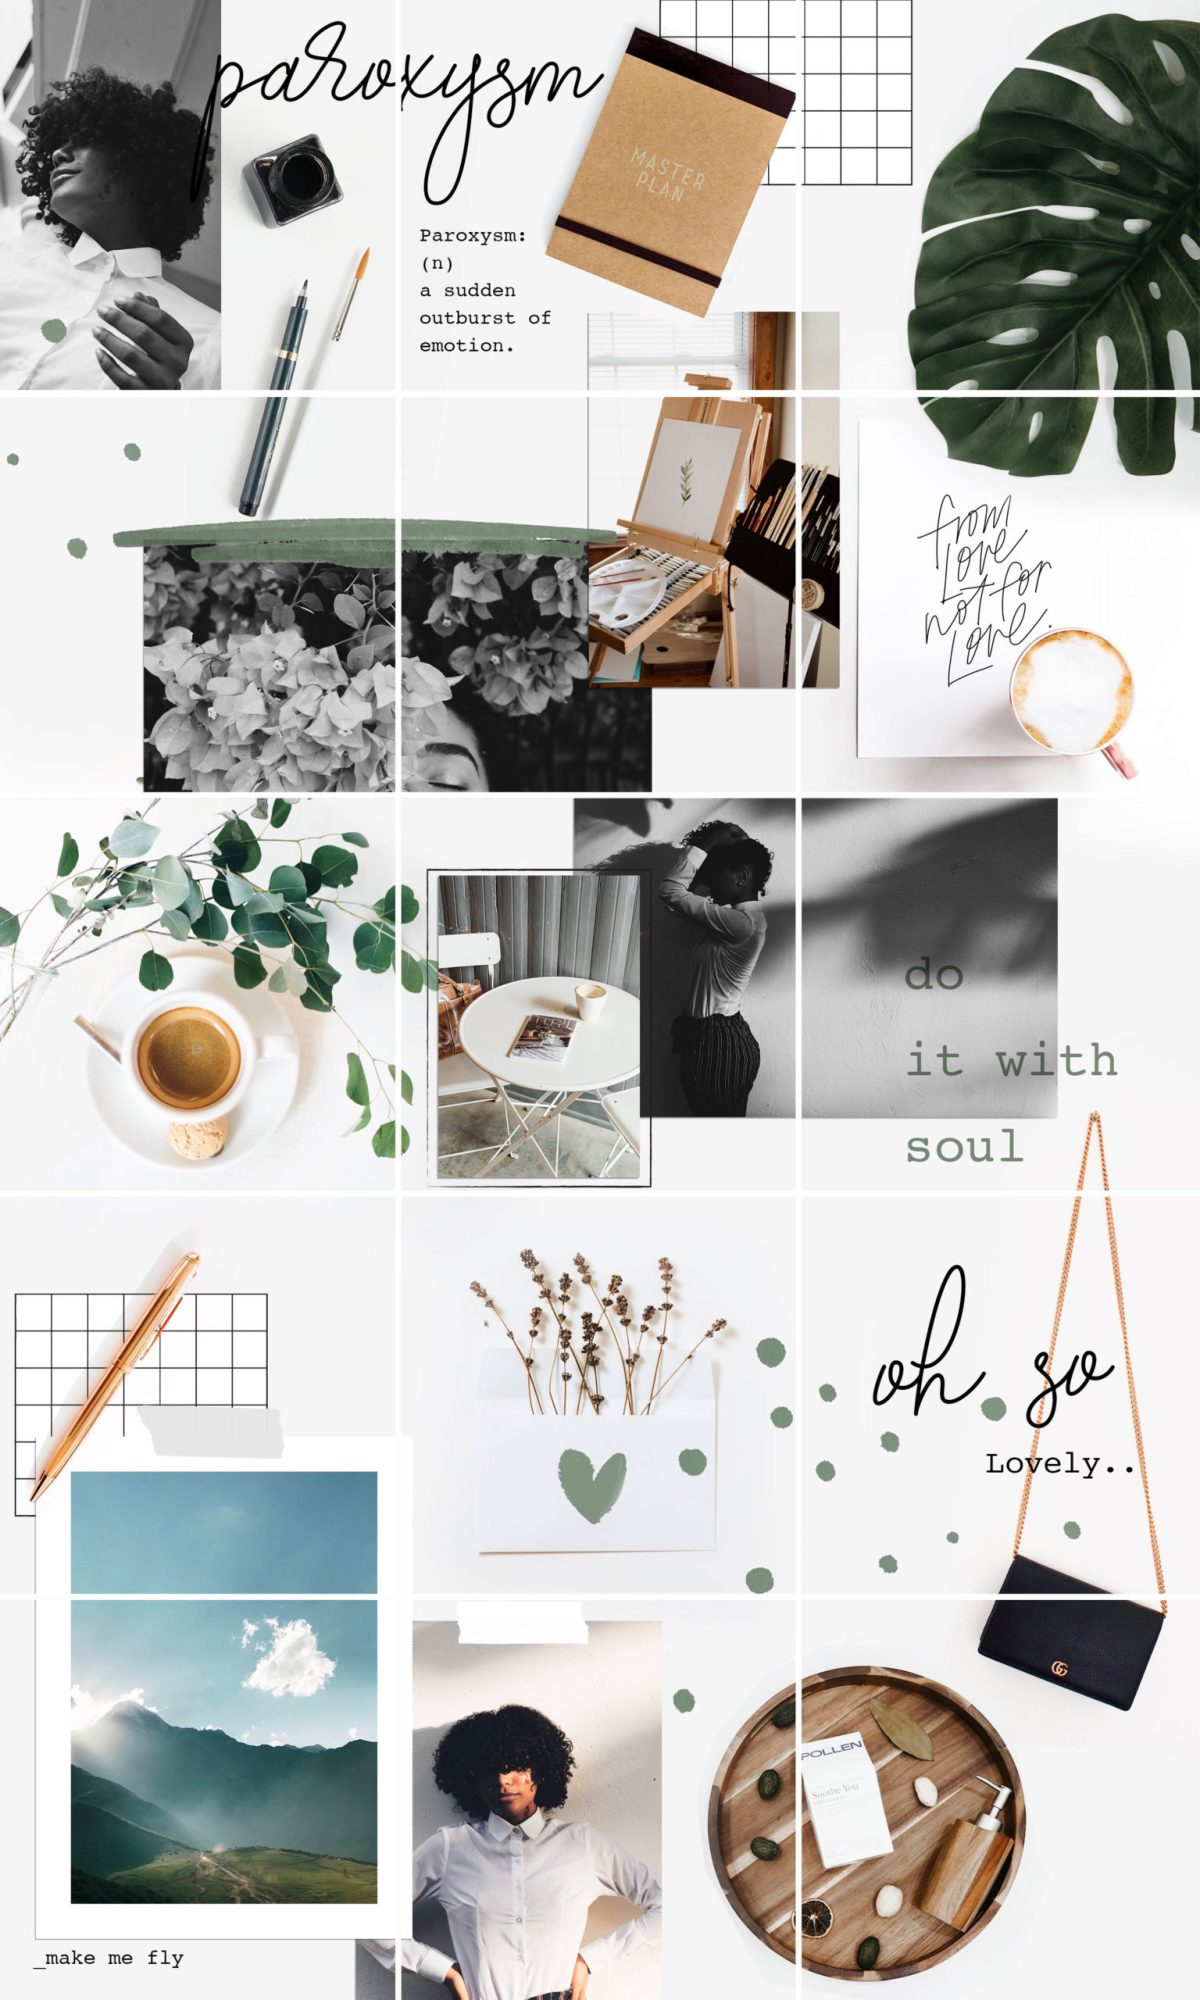 instagram-puzzle-feed-white-background-clean-aesthetic-lu-amaraljpg